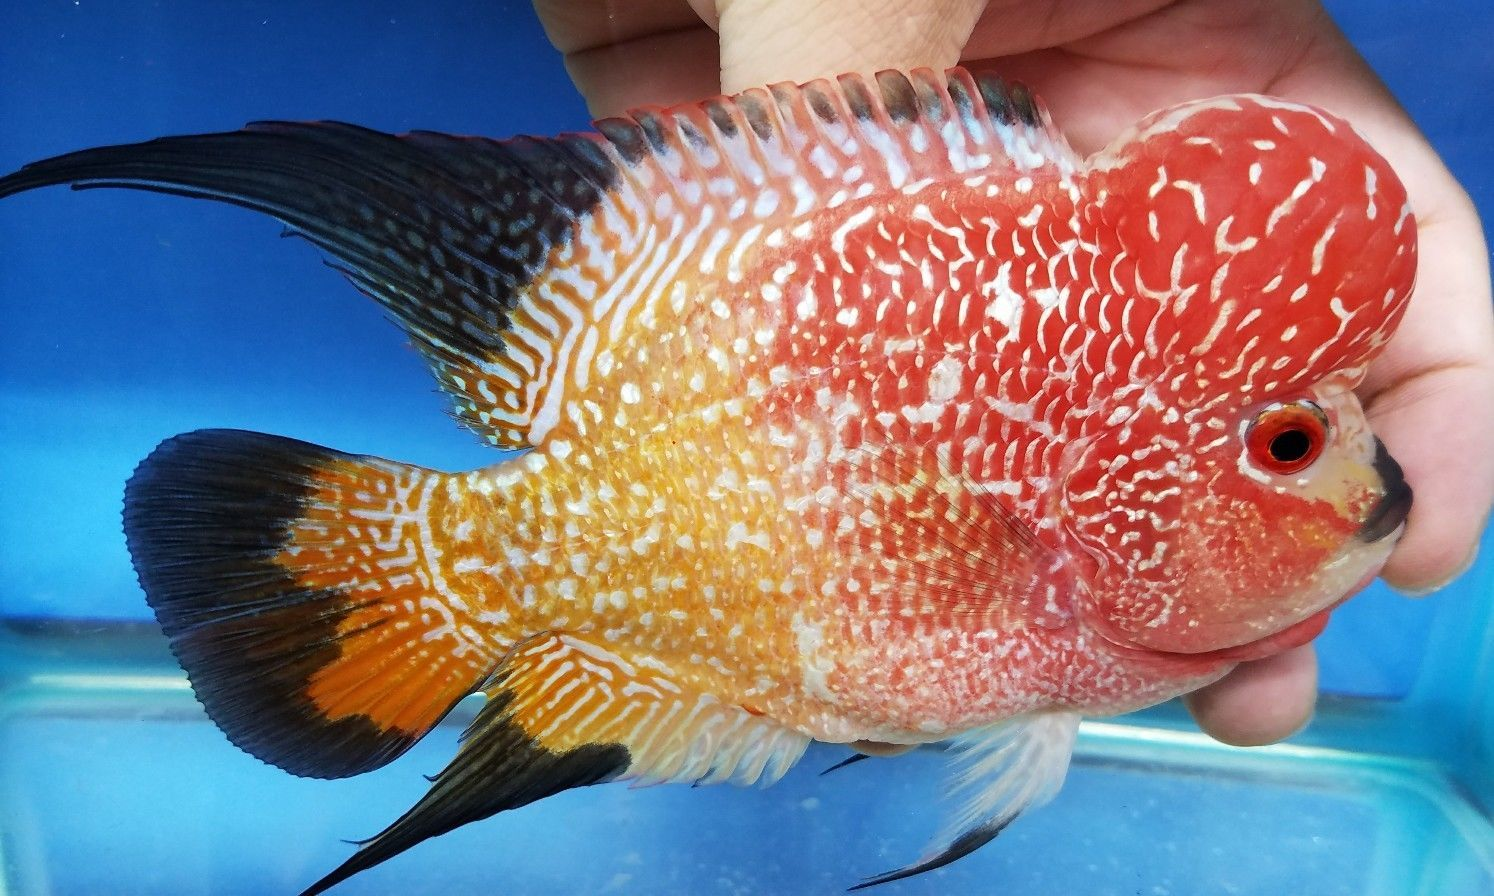 5 5 Inch Show Quality Golden Base Monsterkok Flowerhorn 83 His Color Just Keeps Getting Better And Becoming More Tropical Fish Store Aquarium Fish Cichlids